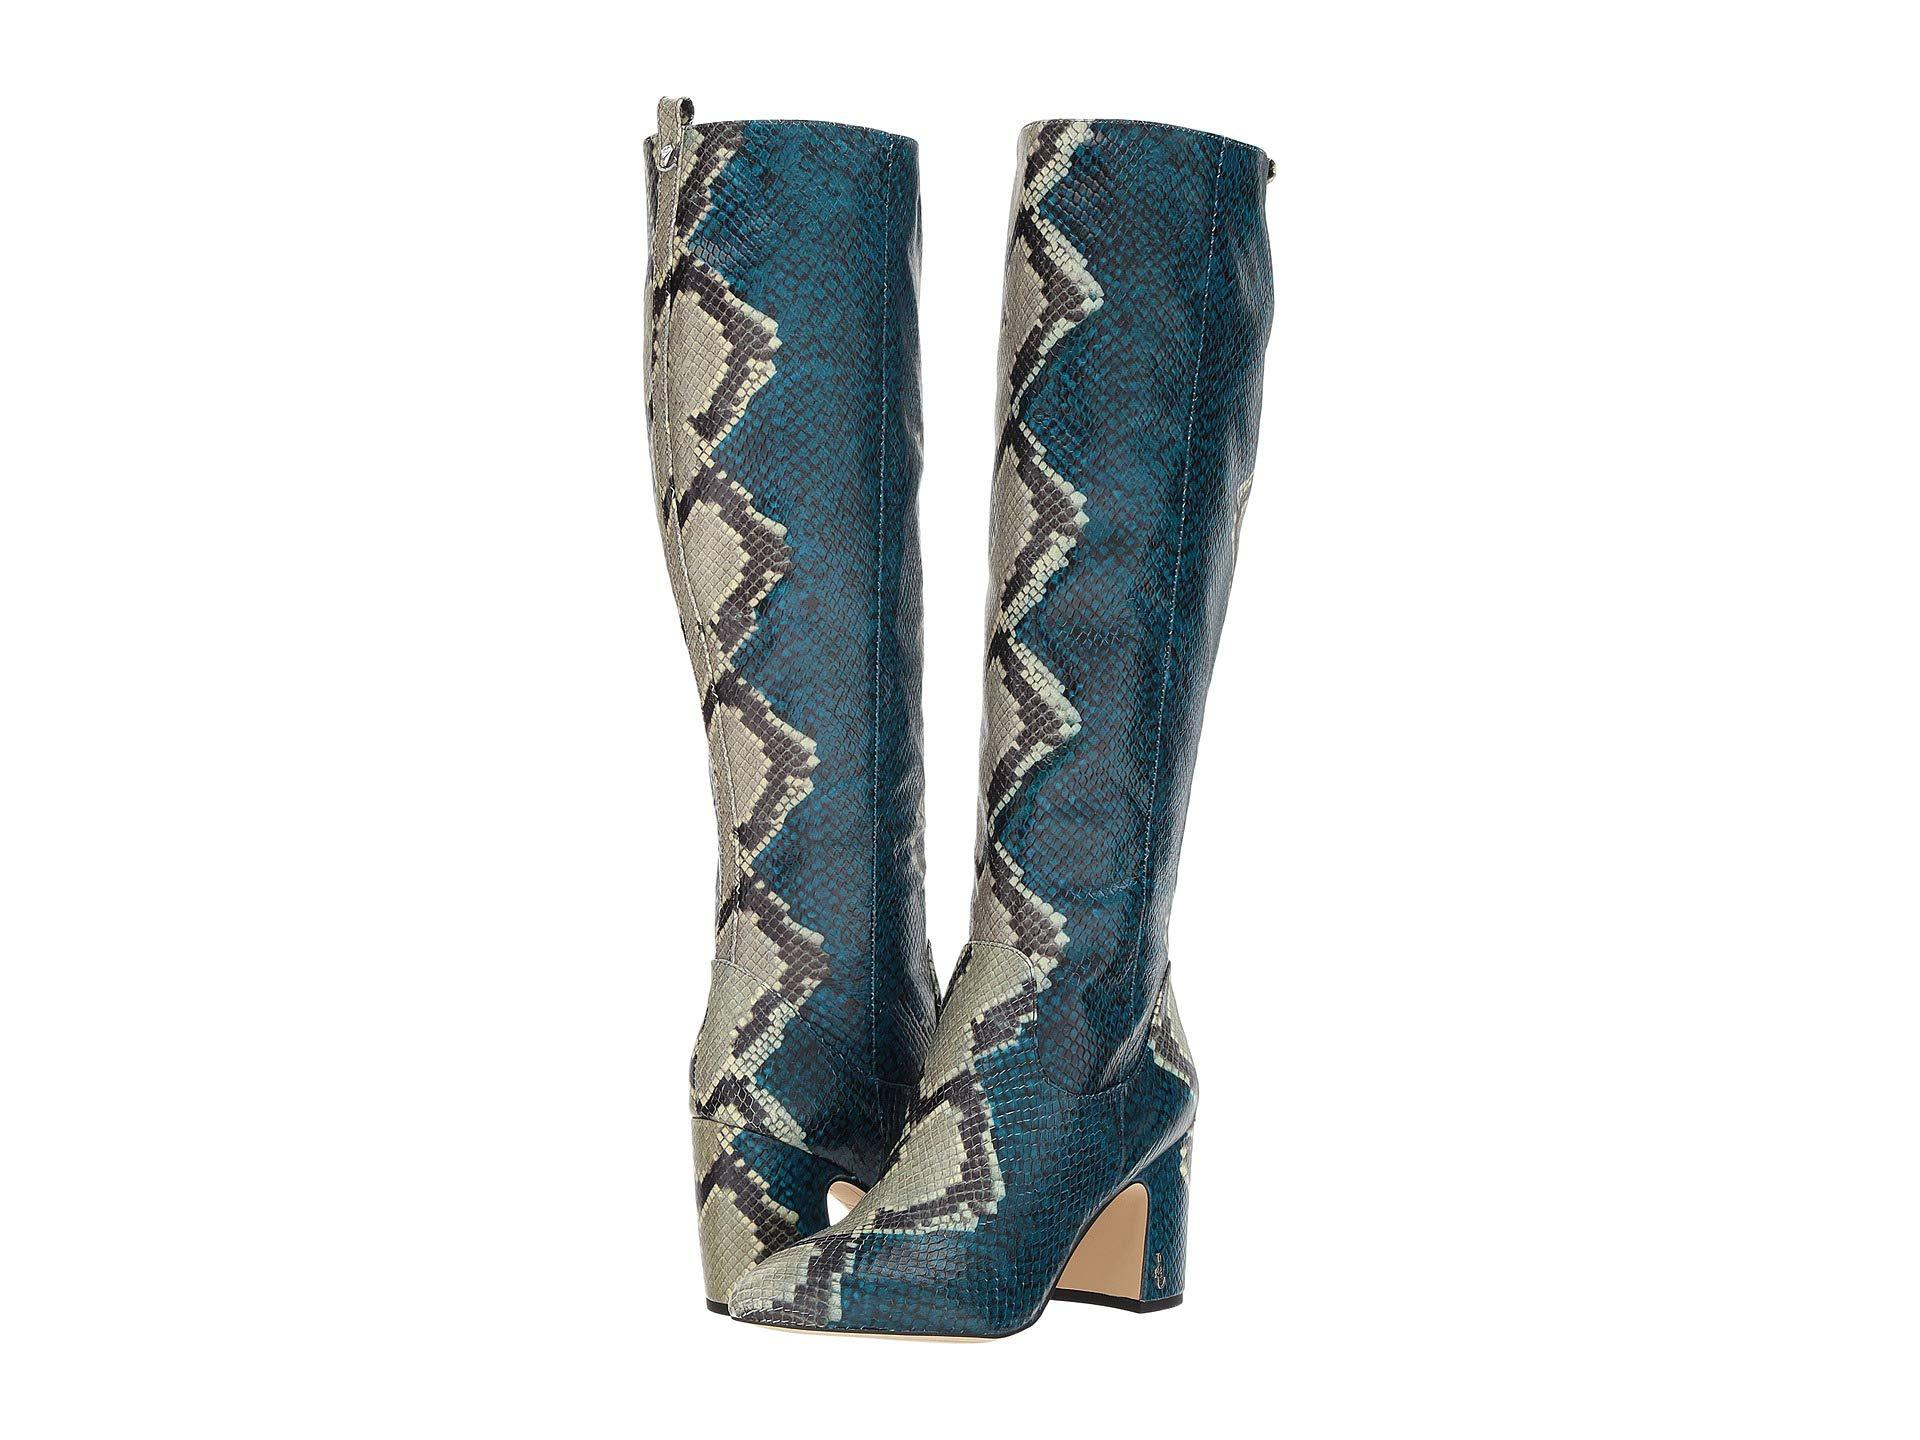 8da574014f7d Lyst - Sam Edelman Hai Knee High Boot in Blue - Save 60%